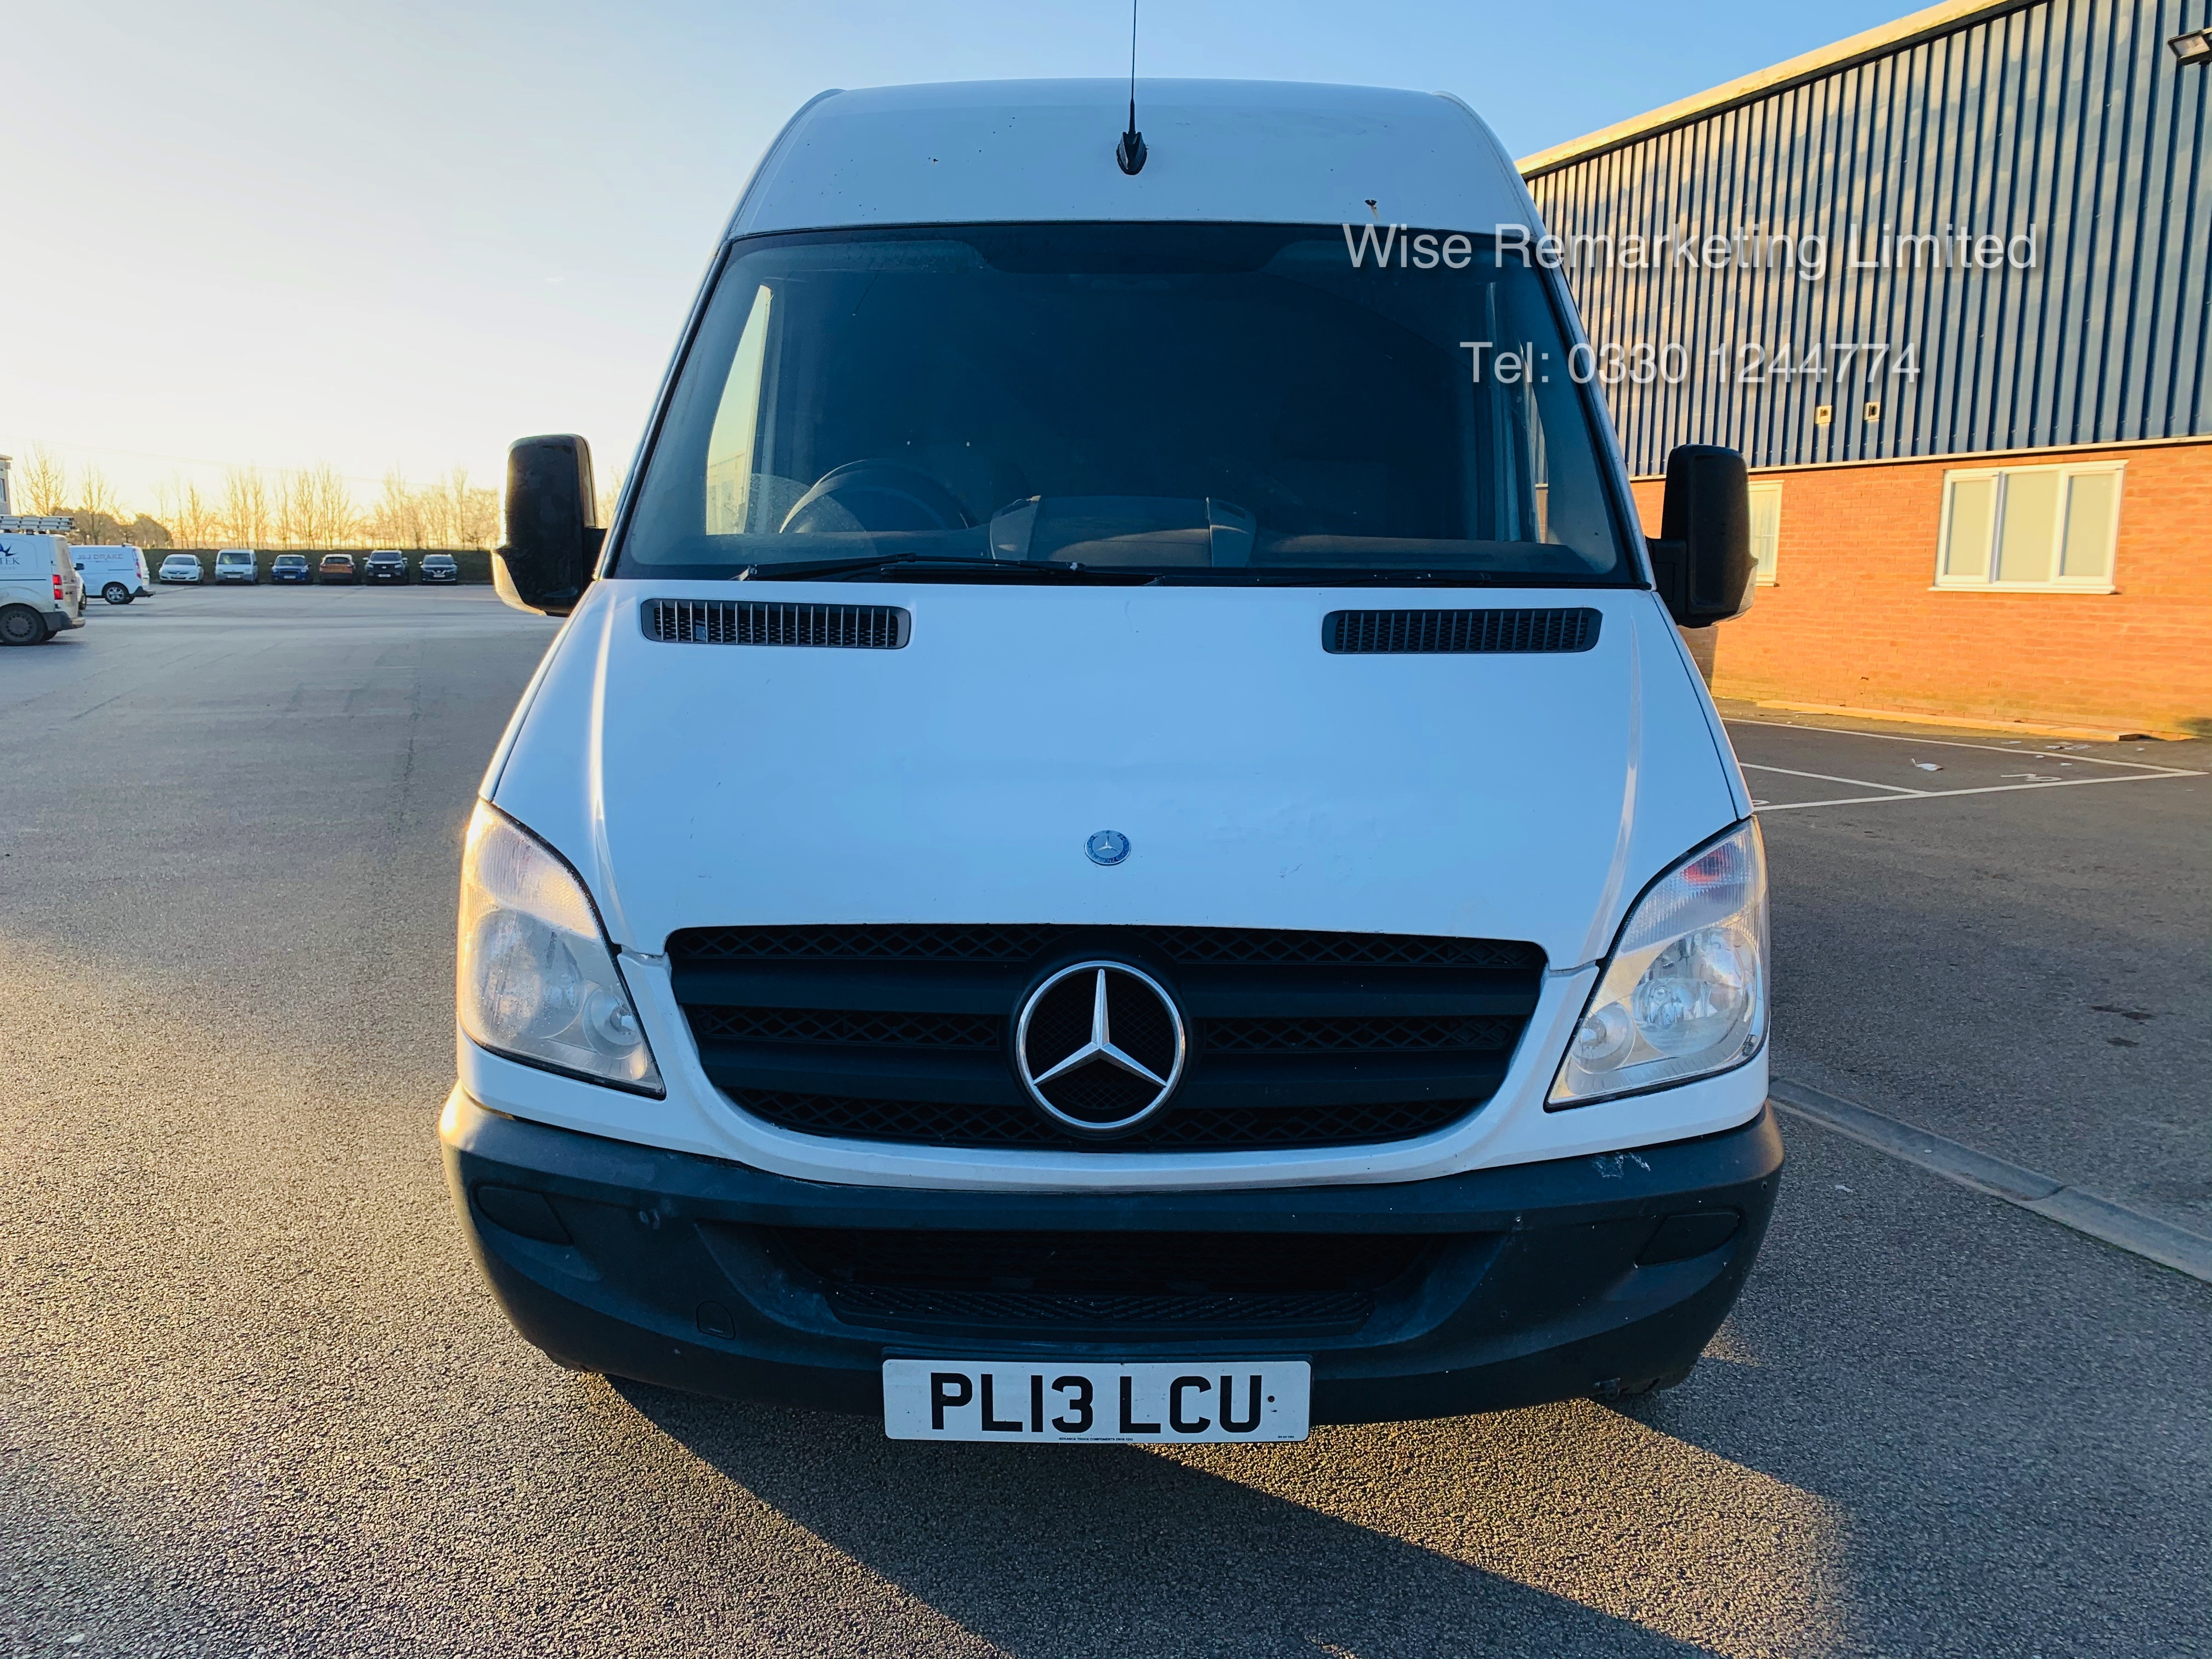 Mercedes Sprinter 316 2.1 CDI Long Wheel Base High Roof Van - 2013 13 Reg - 1 Owner From New - Image 4 of 20